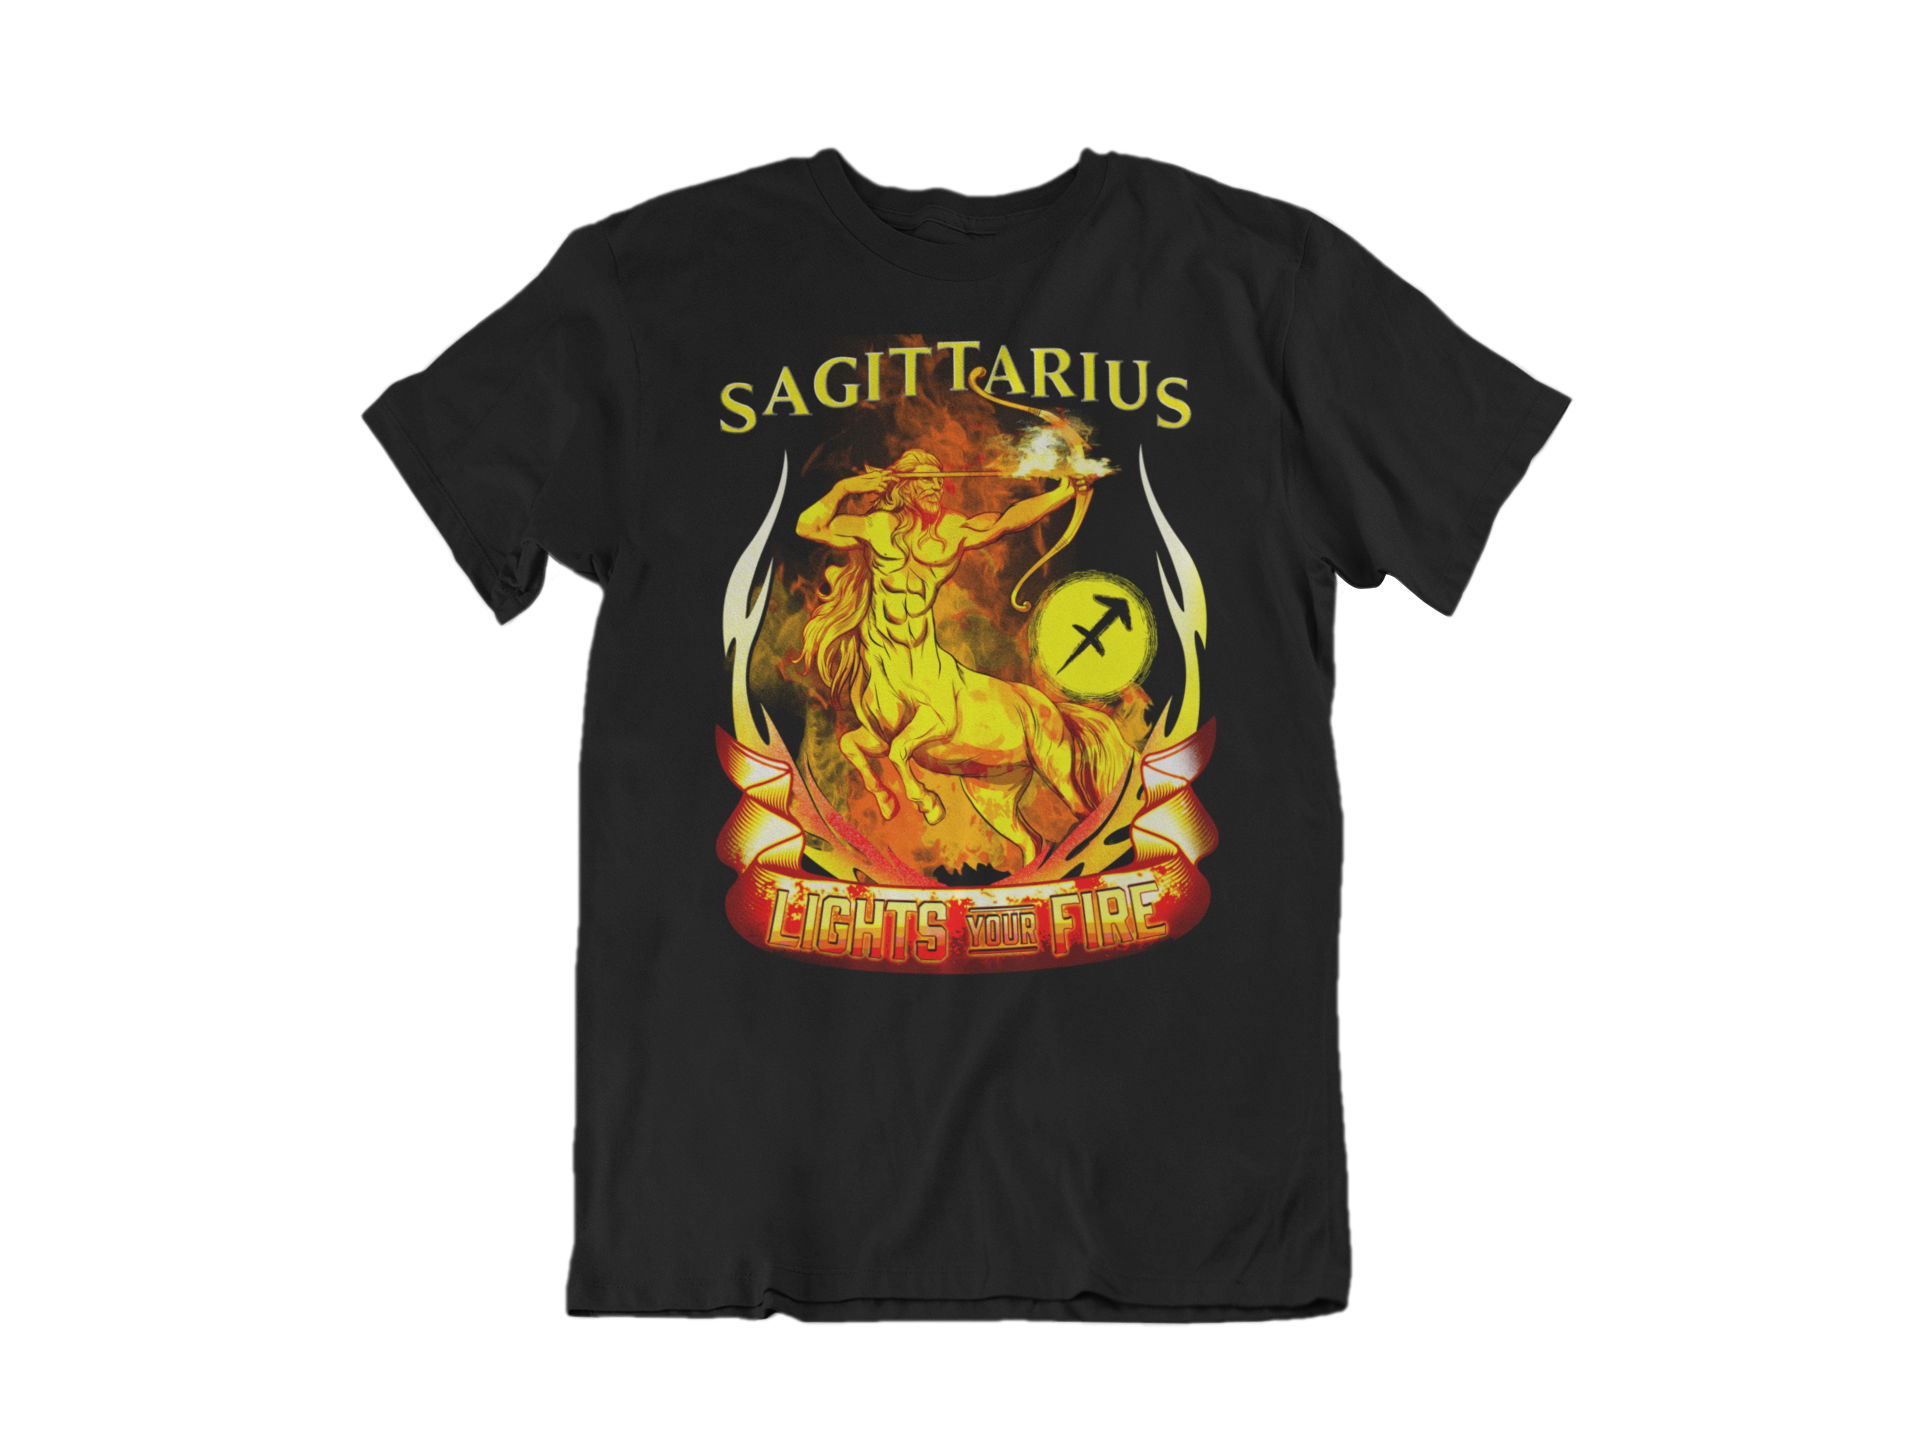 Sagittarius Lights Your Fire